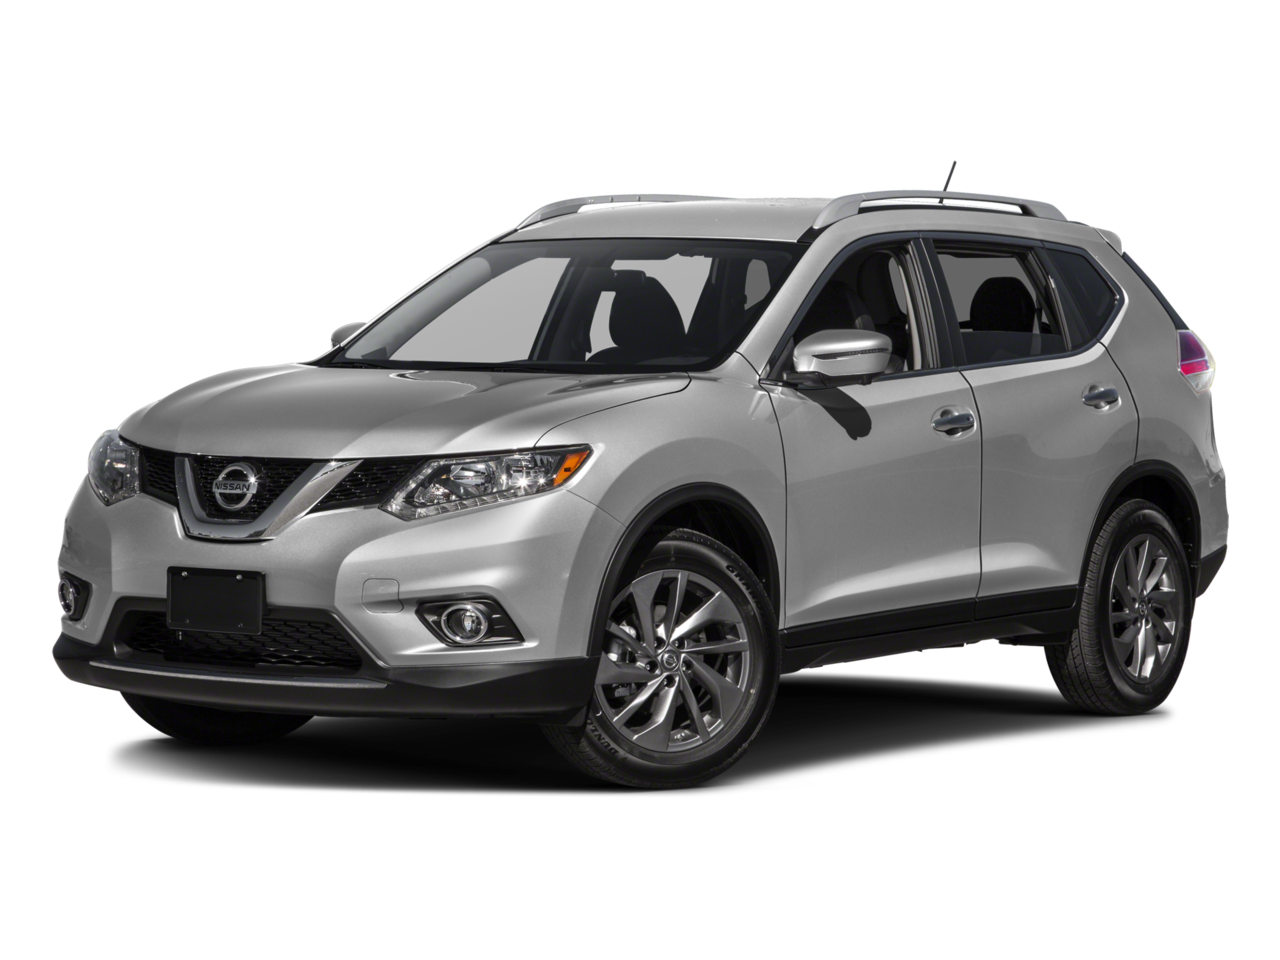 2016 nissan rogue cronic nissan griffin ga. Black Bedroom Furniture Sets. Home Design Ideas